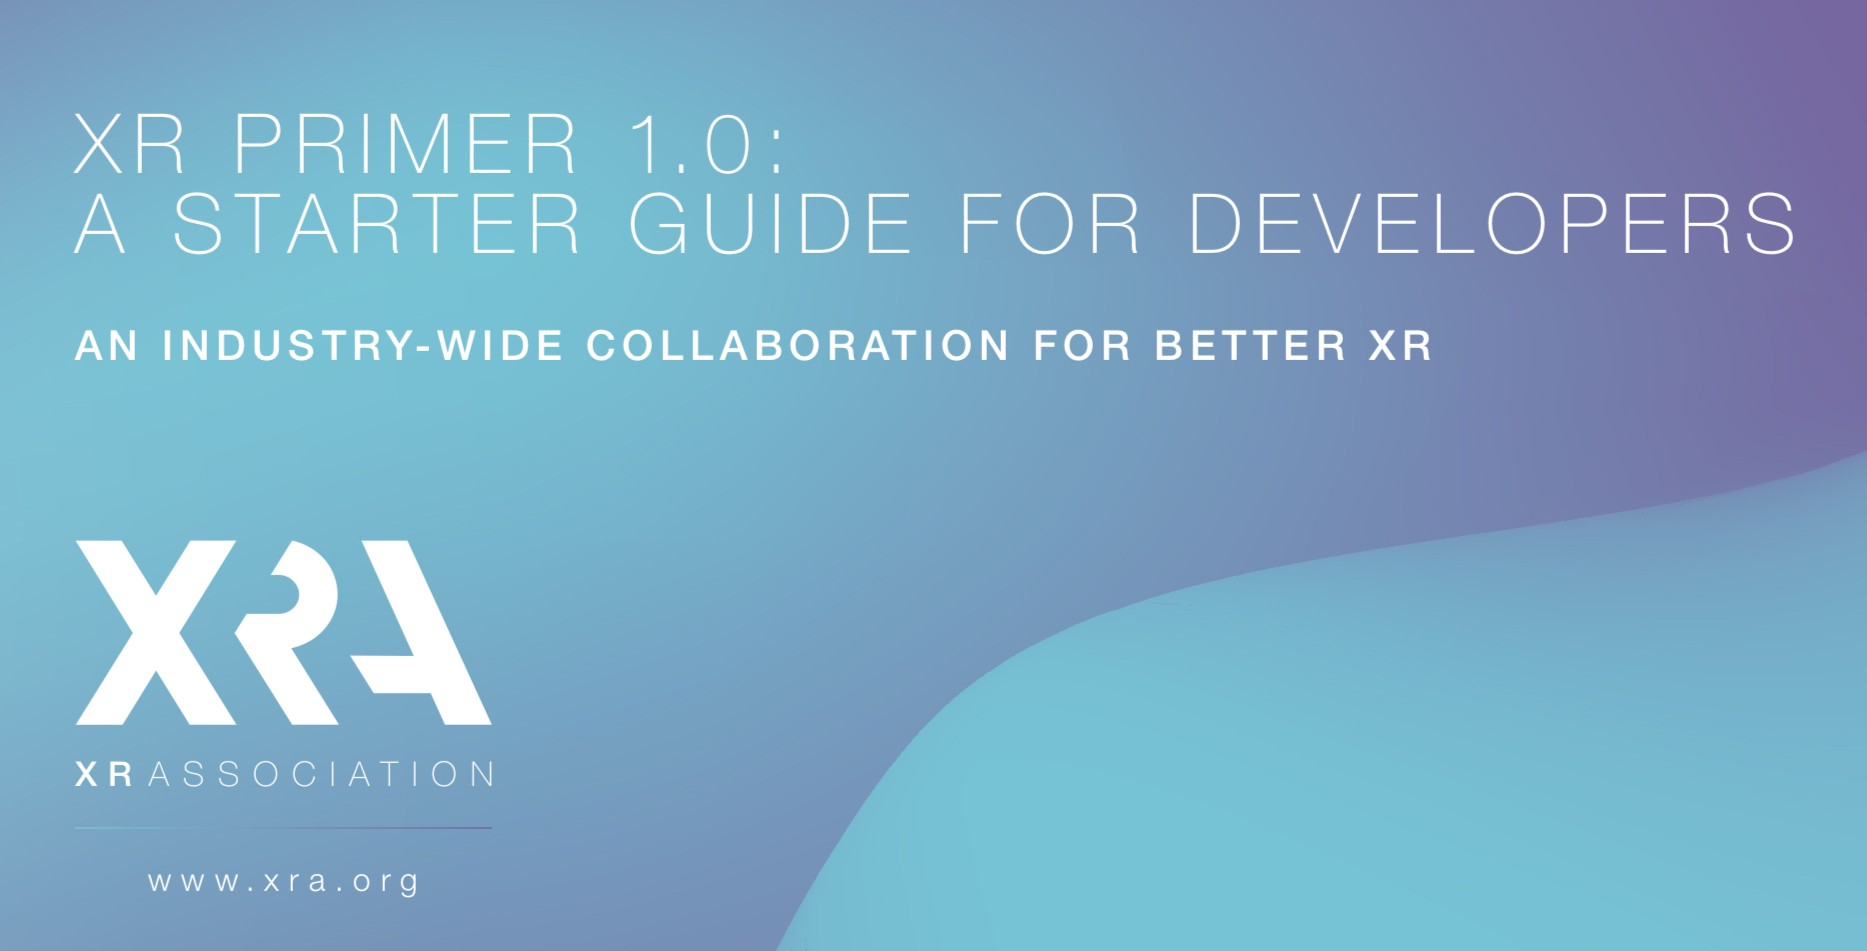 XR Association (XRA) also released an impressive inaugural XR standards guide